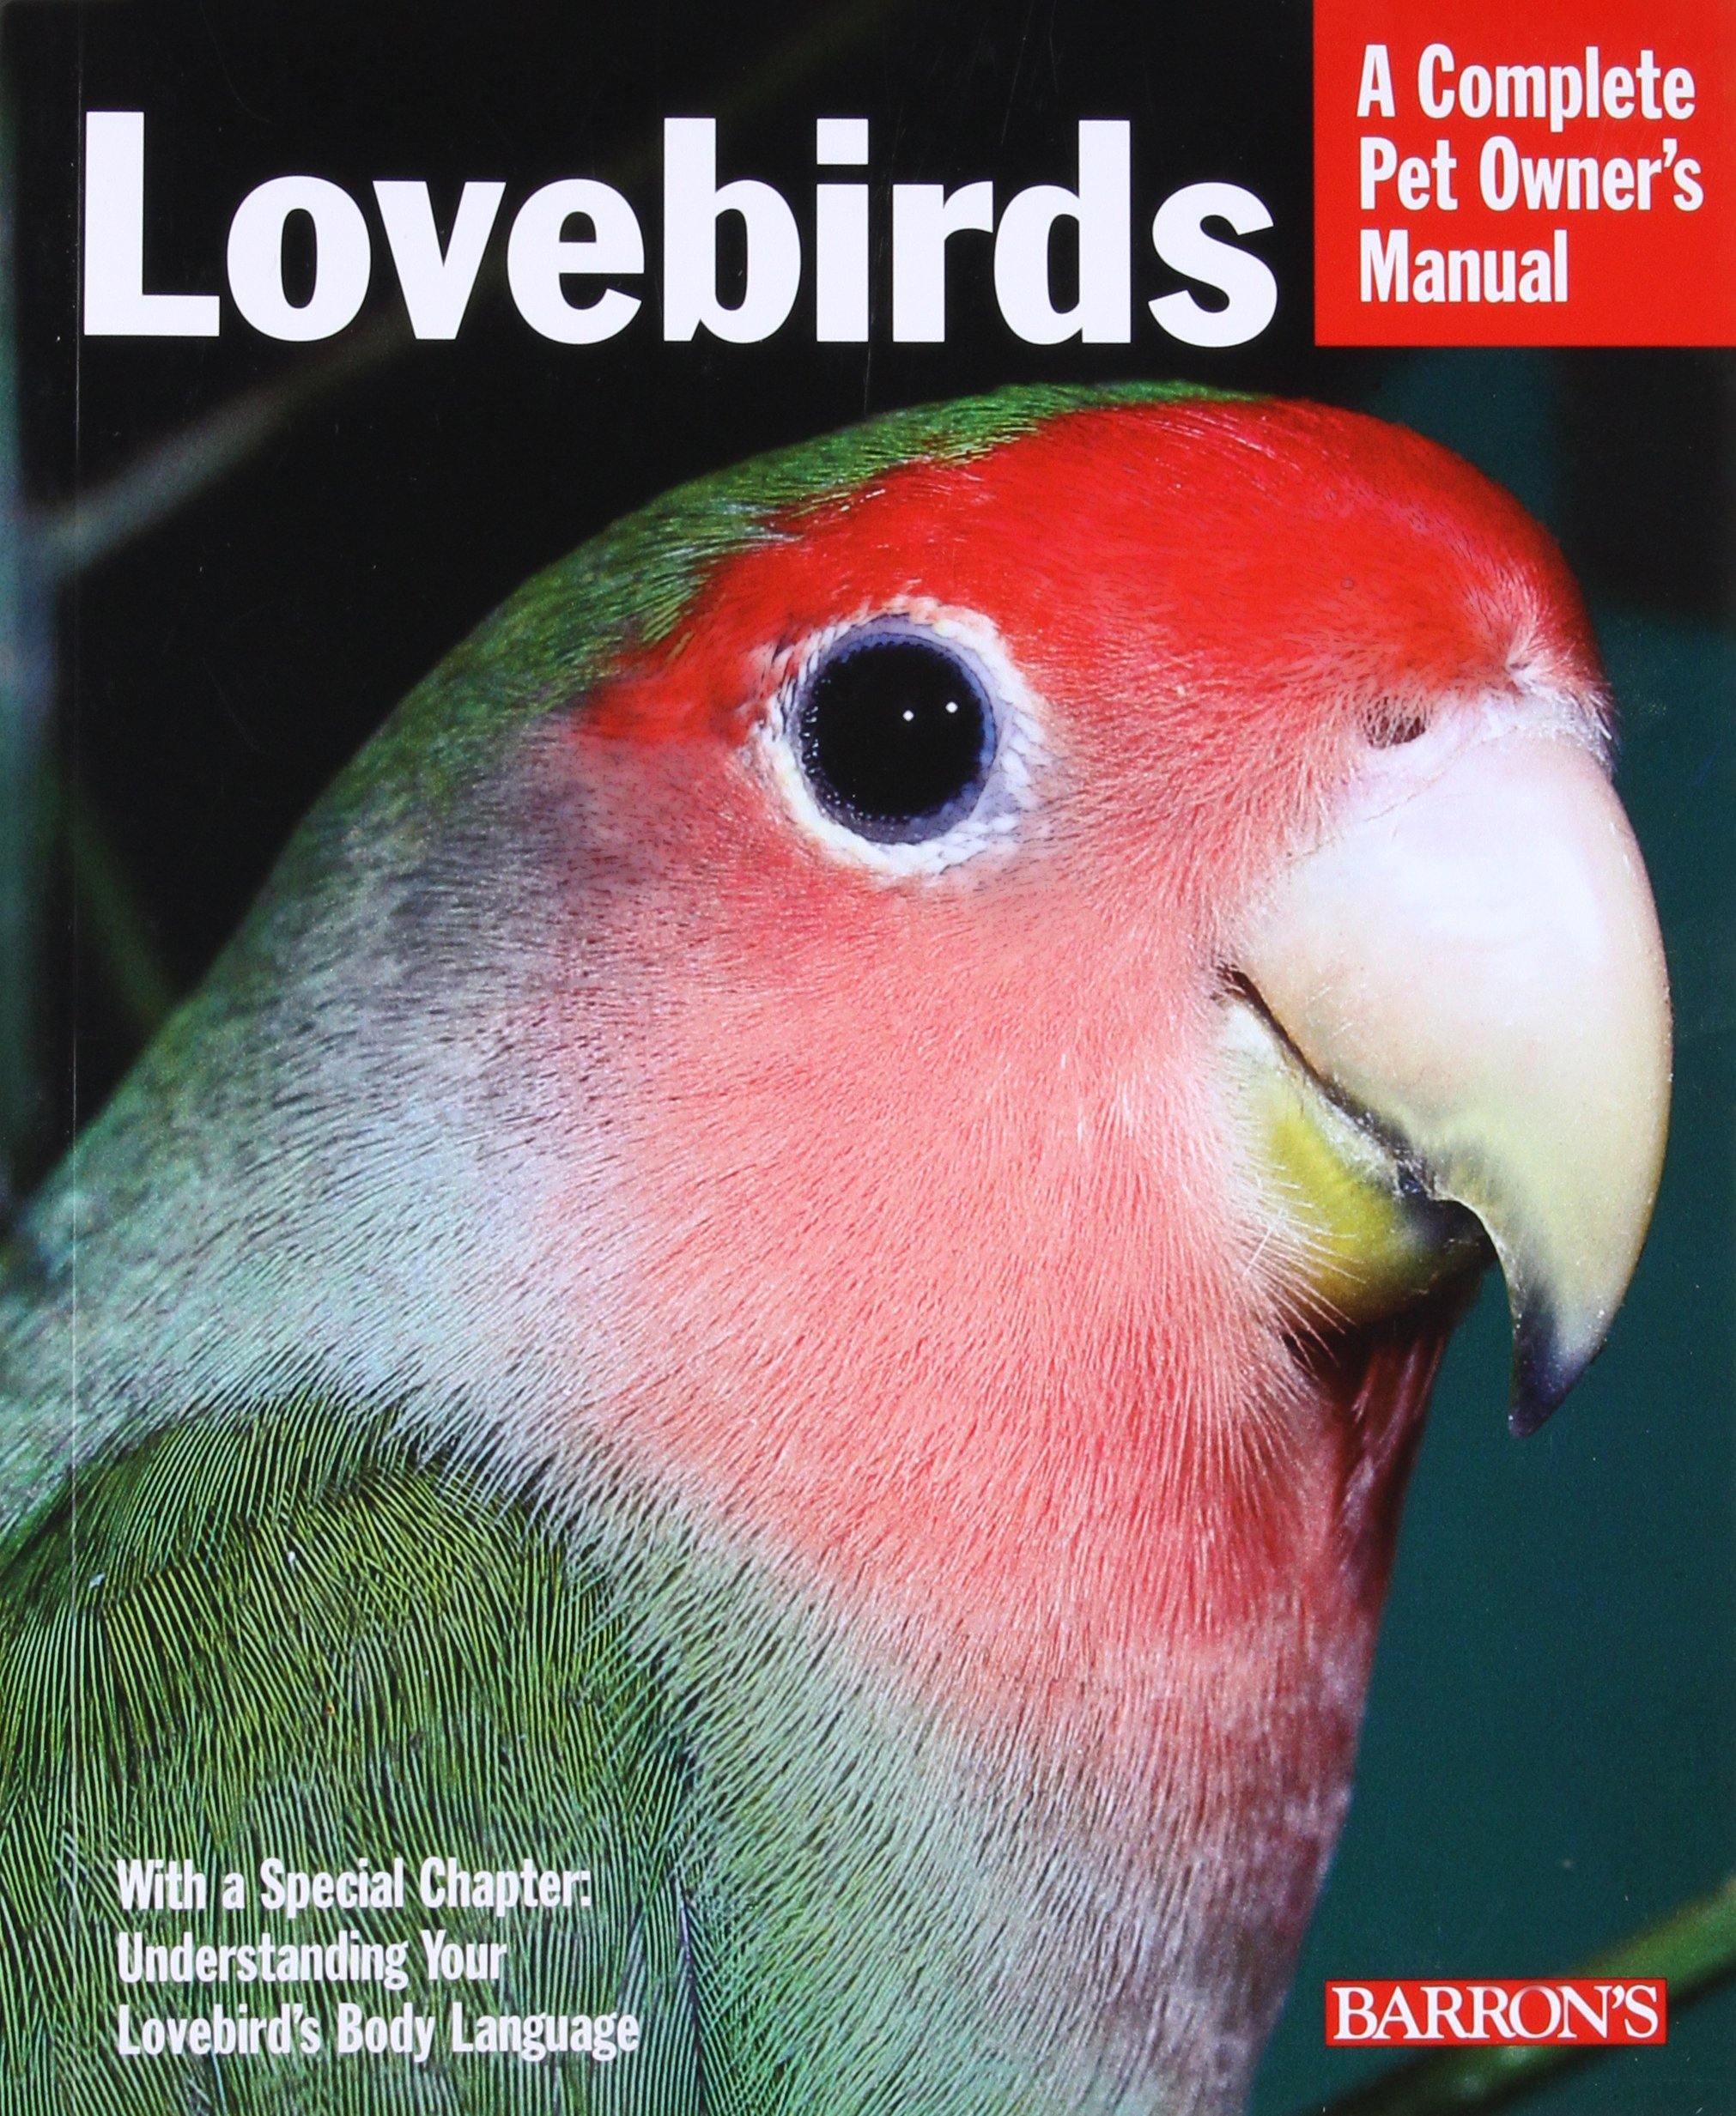 A Complete Pet Owner's Manual: Lovebirds